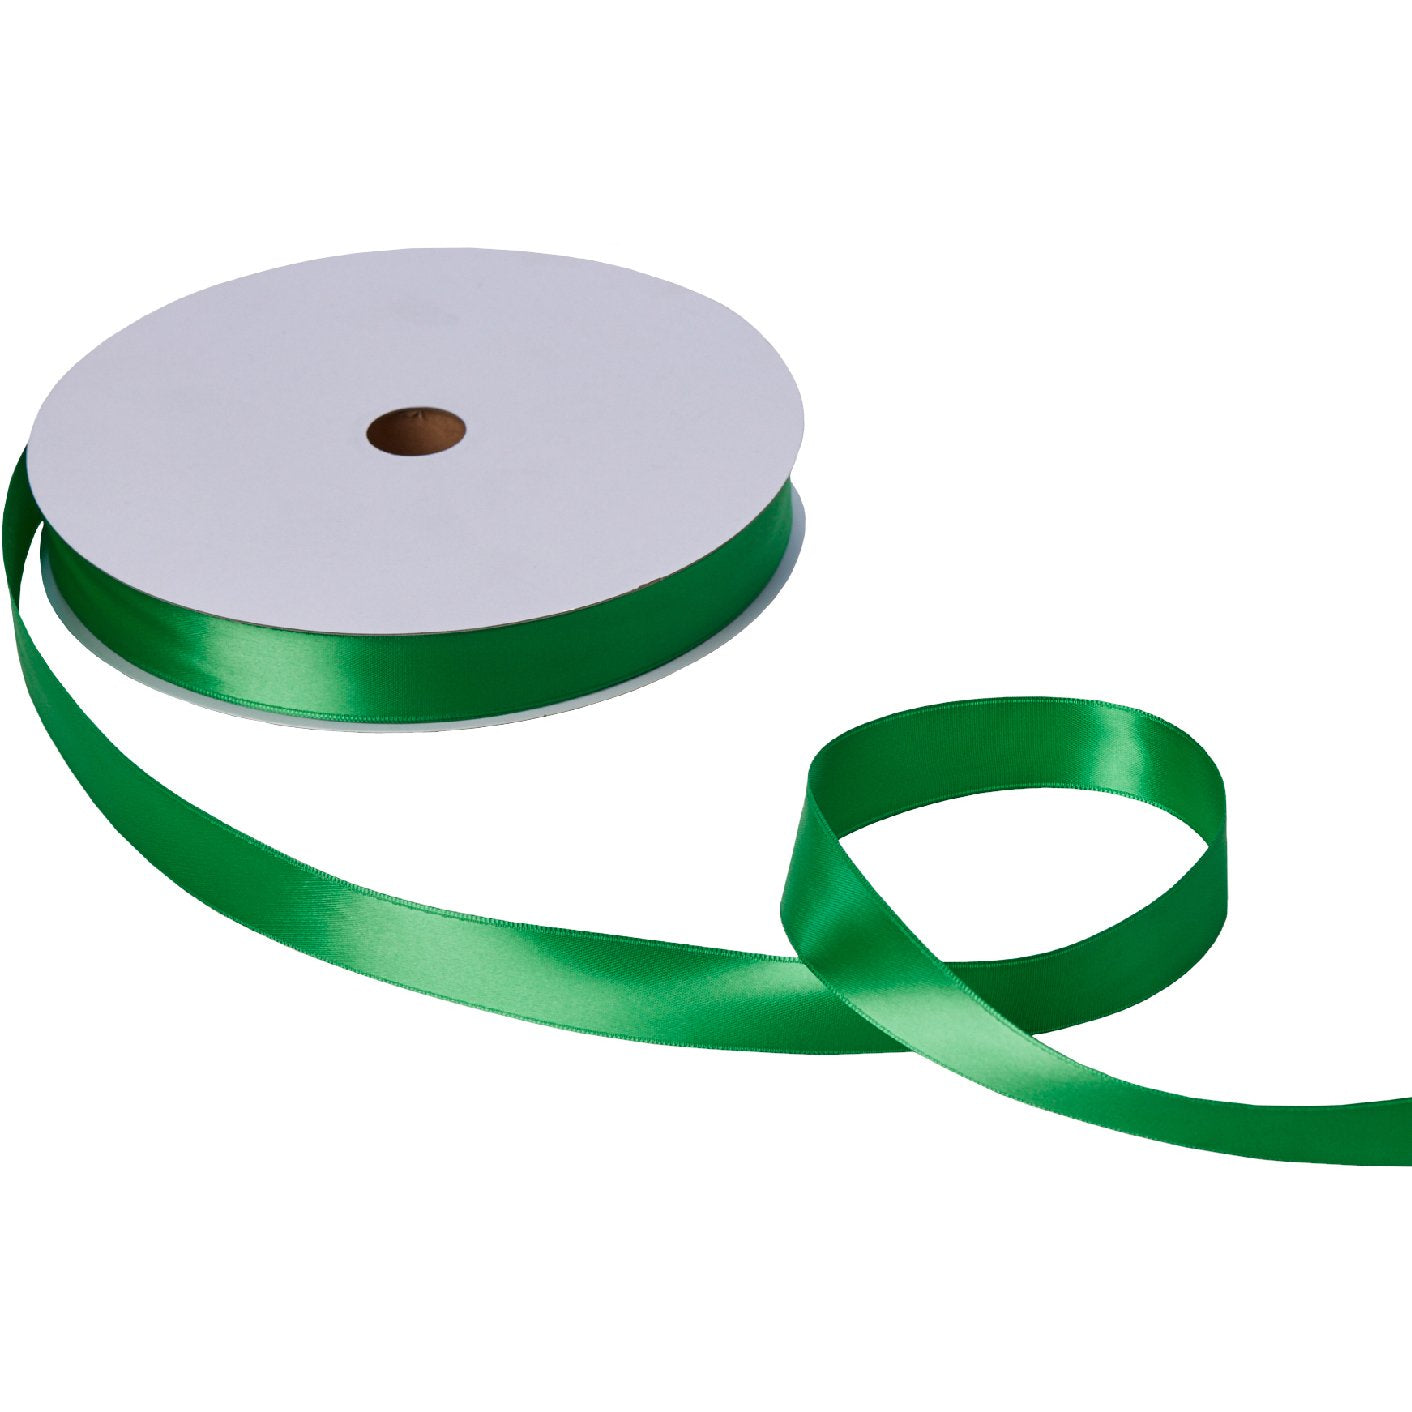 "Jillson & Roberts Double-Faced Satin Ribbon, 1"" Wide x 100 Yards, Green"